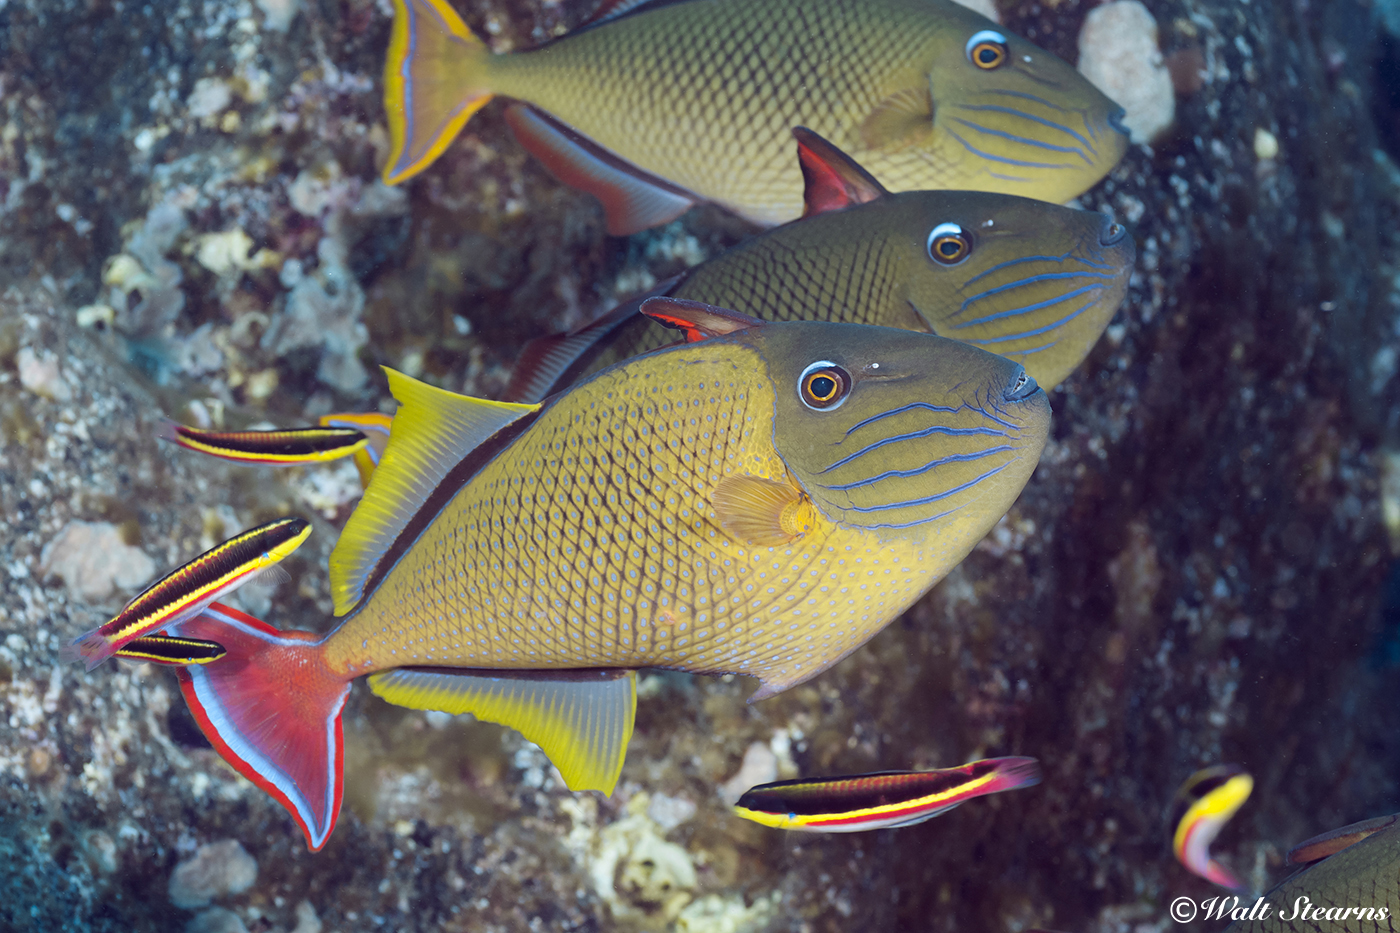 A trio of redtail triggerfish hunt on an Indonesian reef. Females of this species show a slate gray to blue ground color and tail.